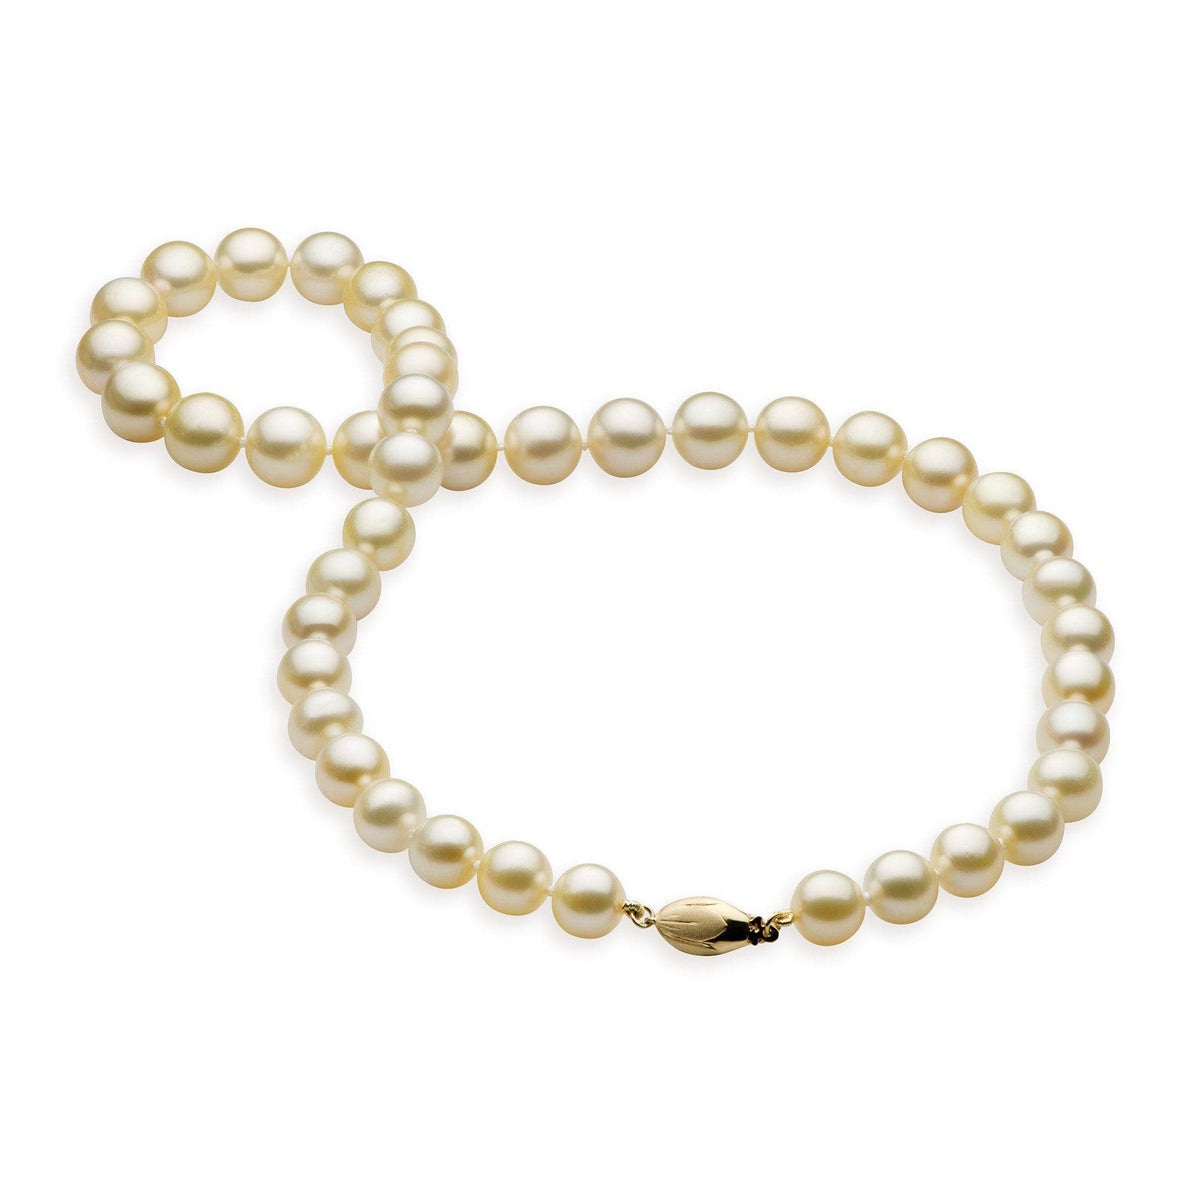 South Sea Pearl Strand in 14K Yellow Gold (8-12mm)